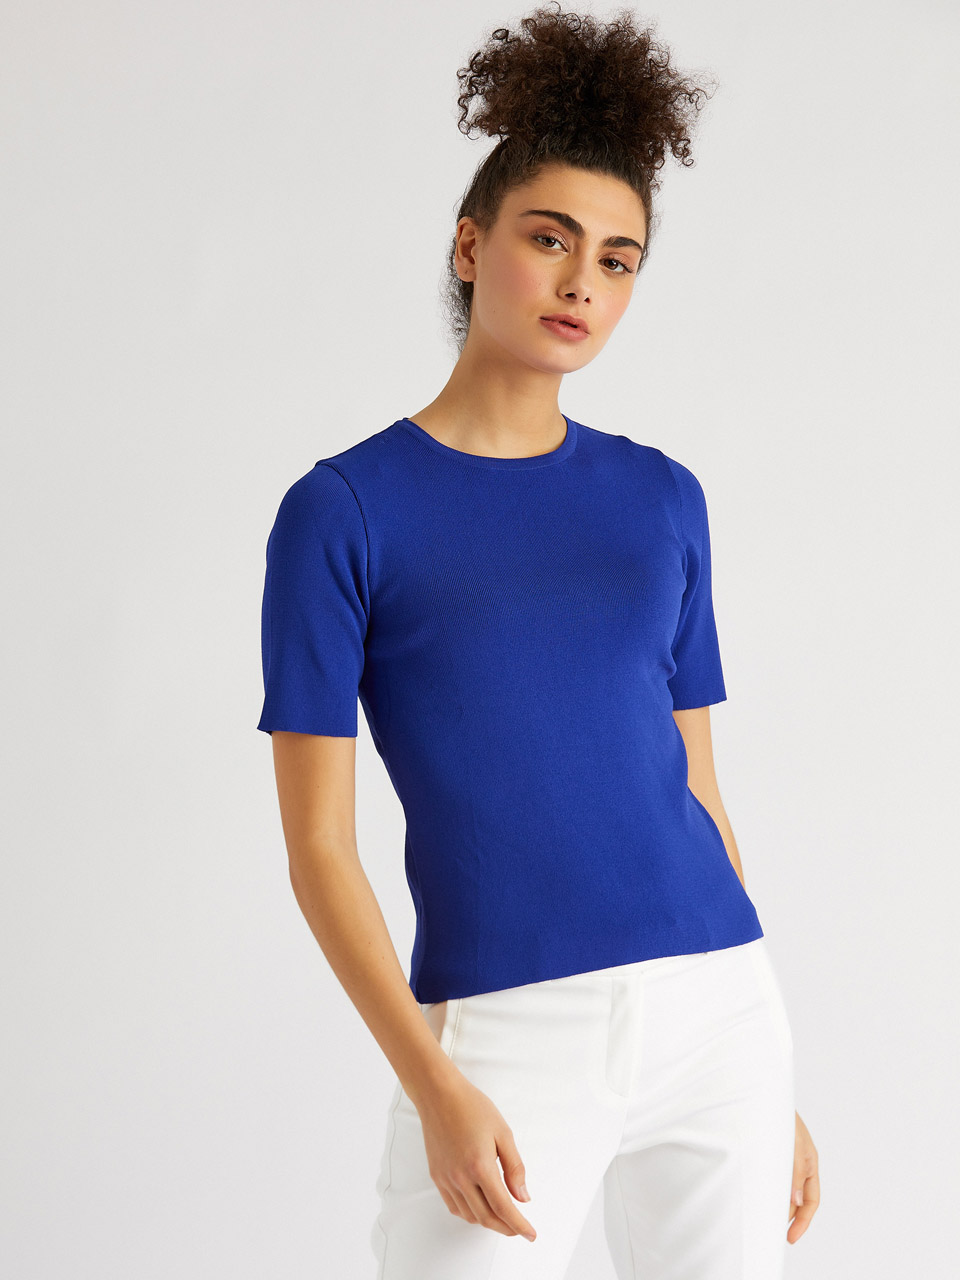 Round Neck Short Sleeve Knitwear Blouse